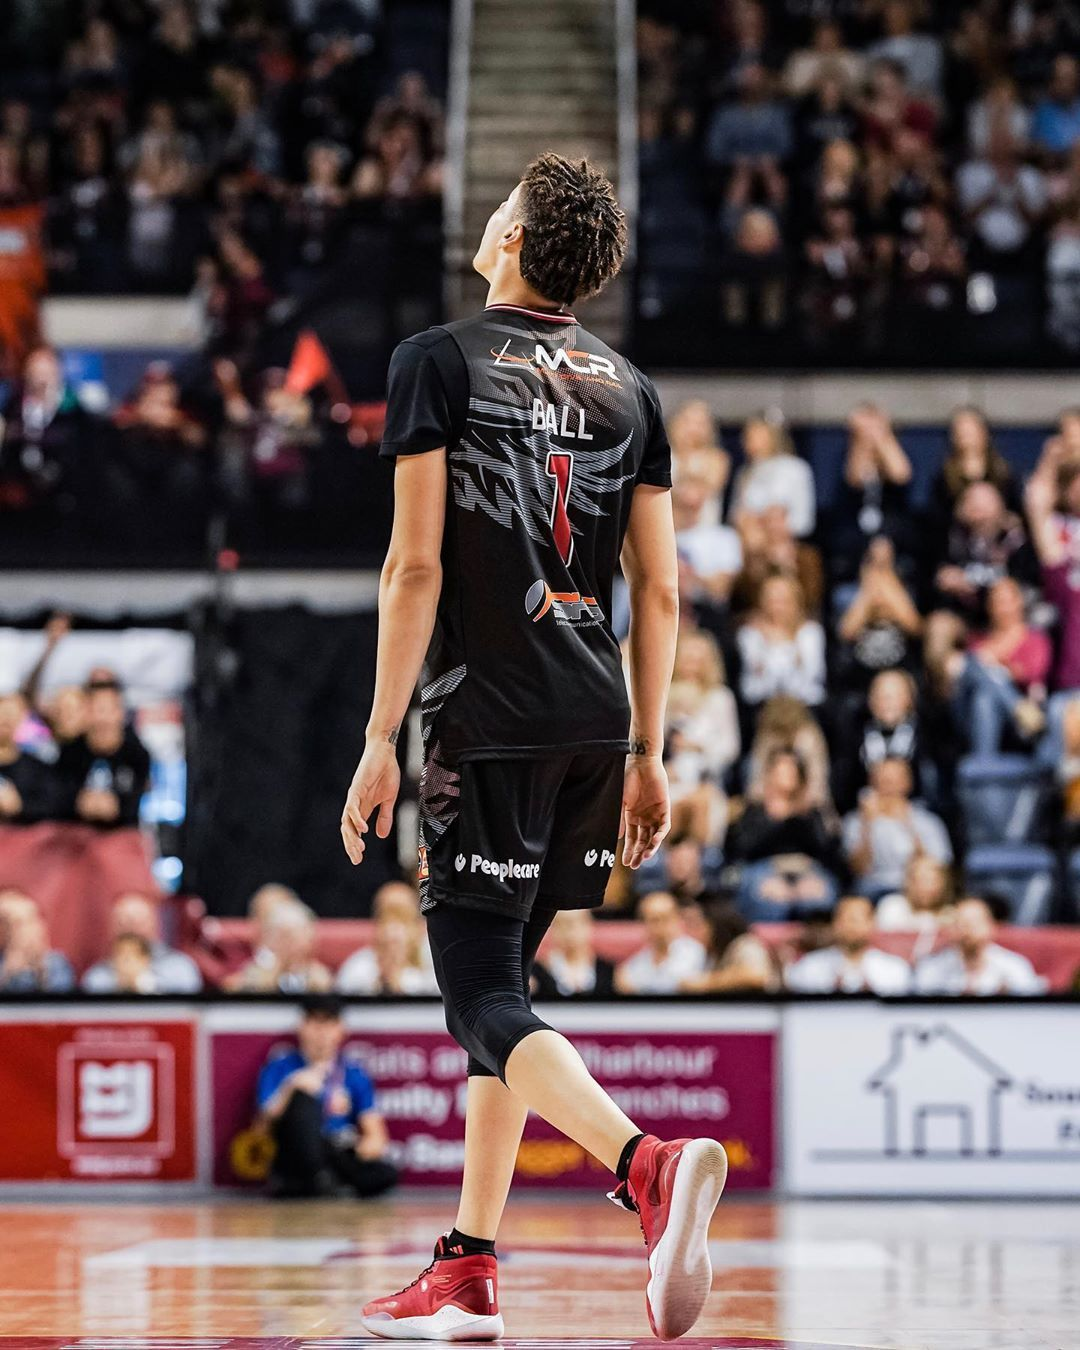 Illawarra Hawks On Instagram Lamelo Ball Update Ball Suffered A Bruised Foot In Practice And Was Prescribed To Rest In 2020 Lamelo Ball Man Crush Everyday Ball